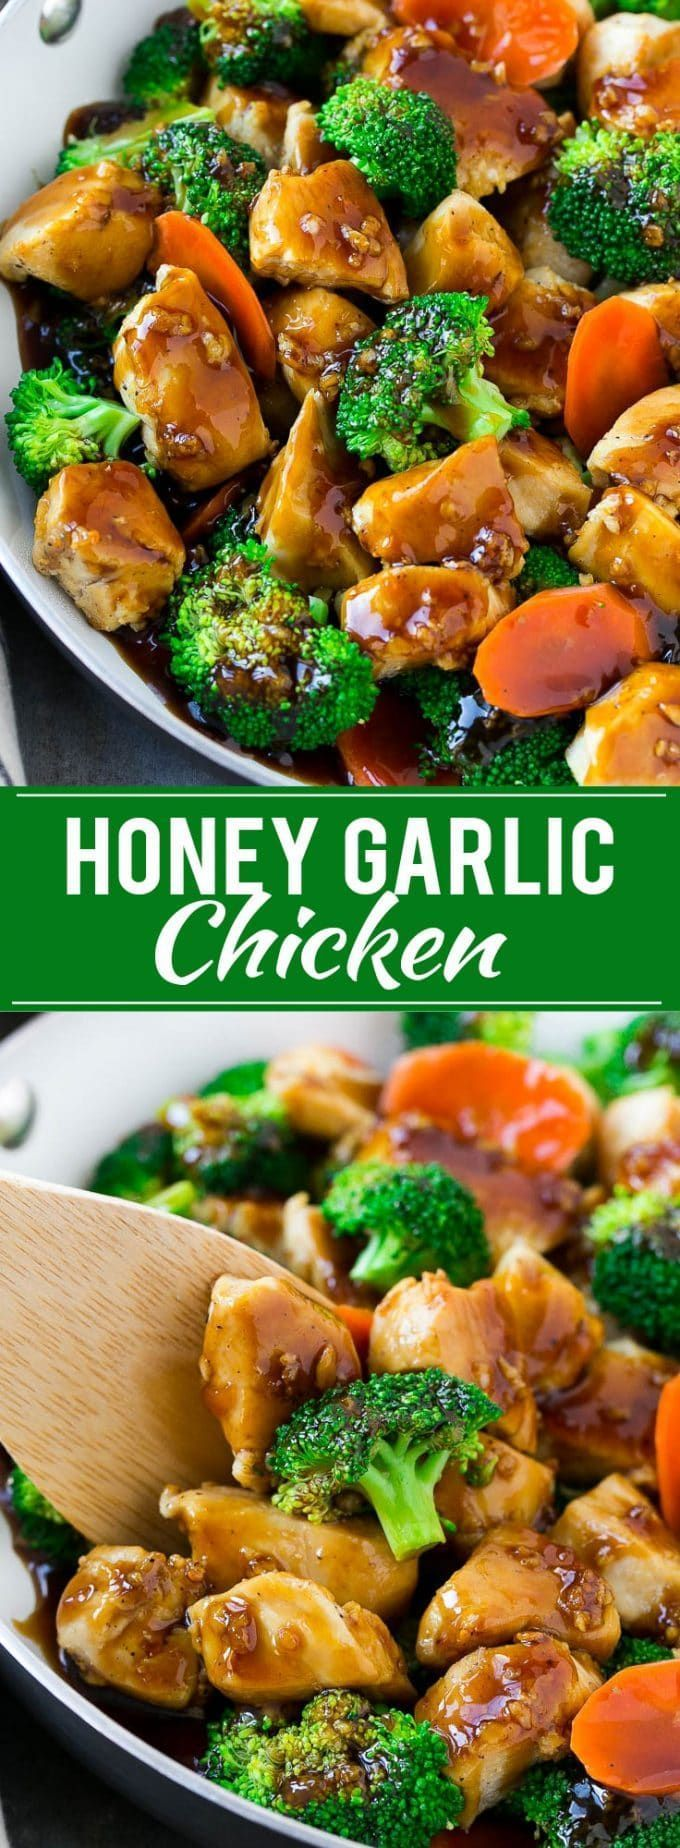 THIS HONEY GARLIC CHICKEN STIR FRY RECIPE IS FULL OF CHICKEN AND VEGGIES ALL COATED IN THE EASIEST SWEET AND SAVORY SAUCE. A HEALTHIER DINNER OPTION THAT THE WHOLE FAMILY WILL LOVE!